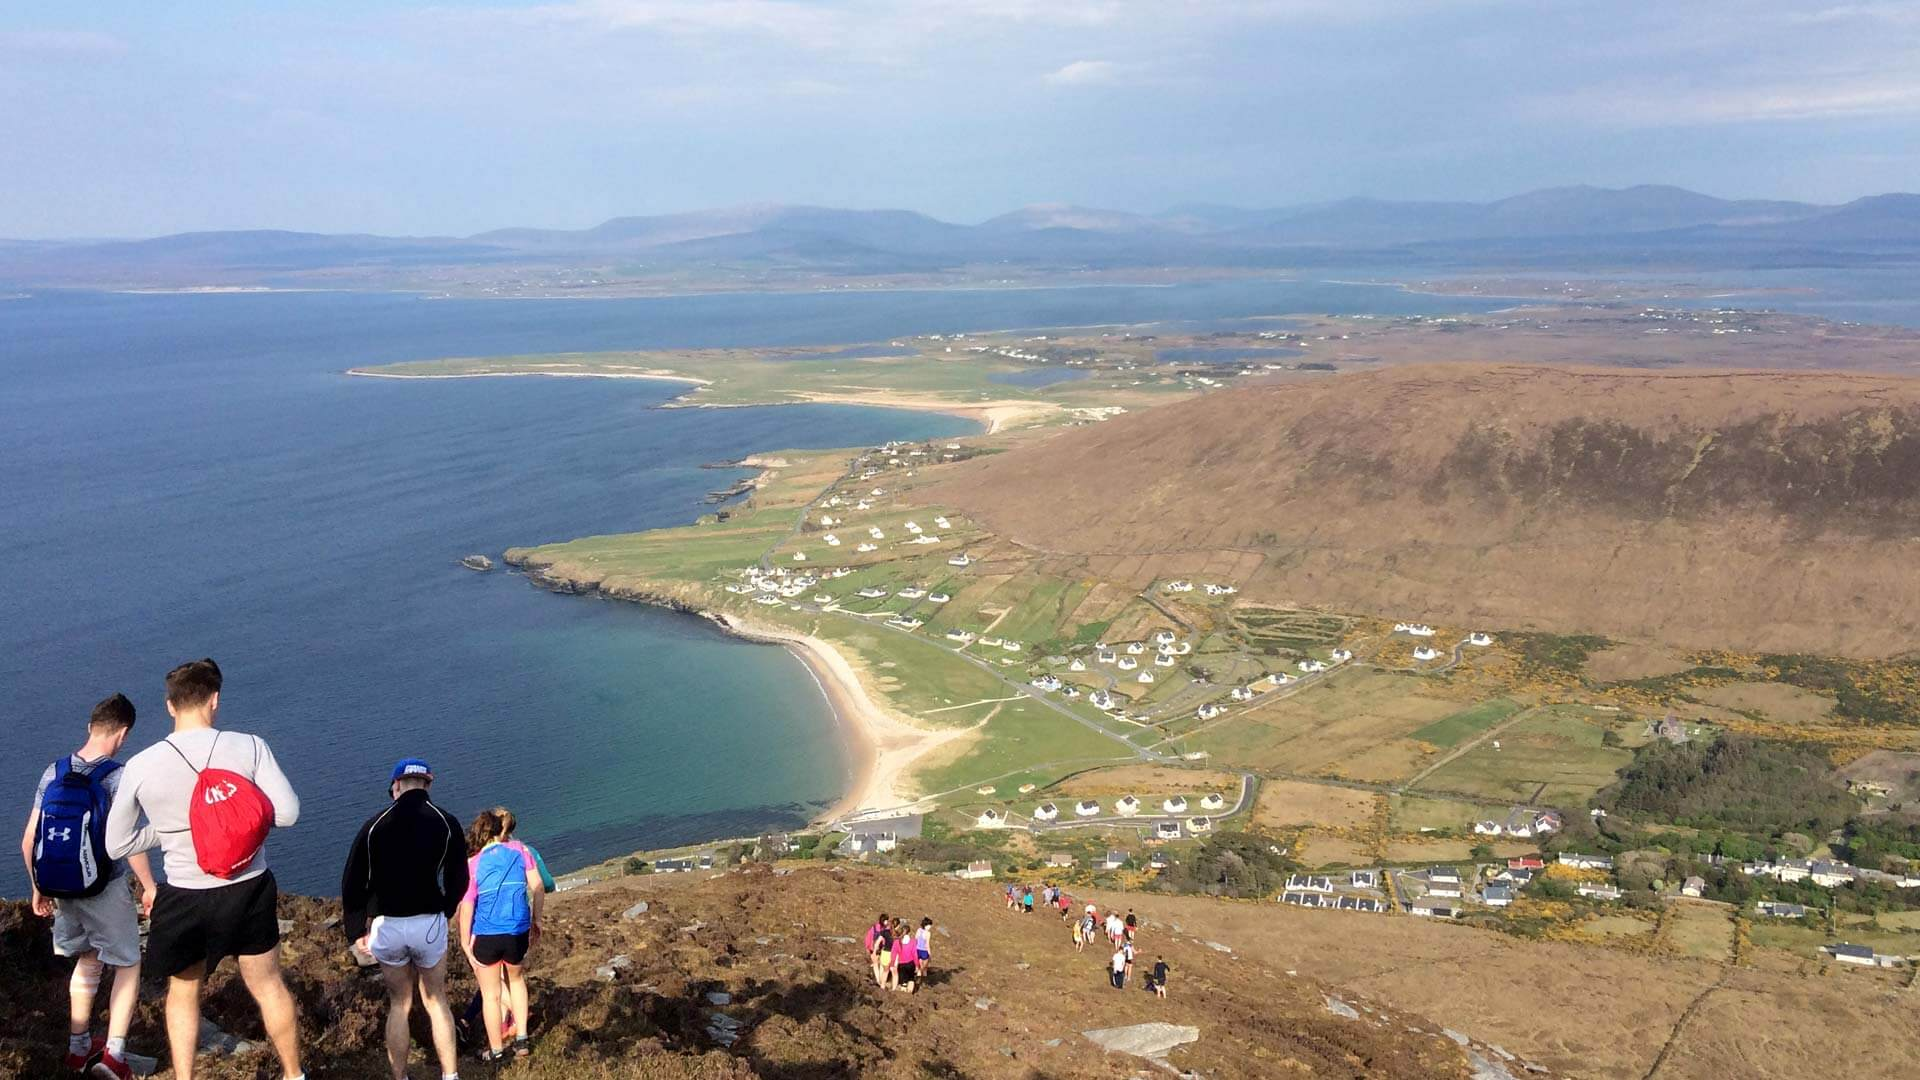 School Tours To Achill